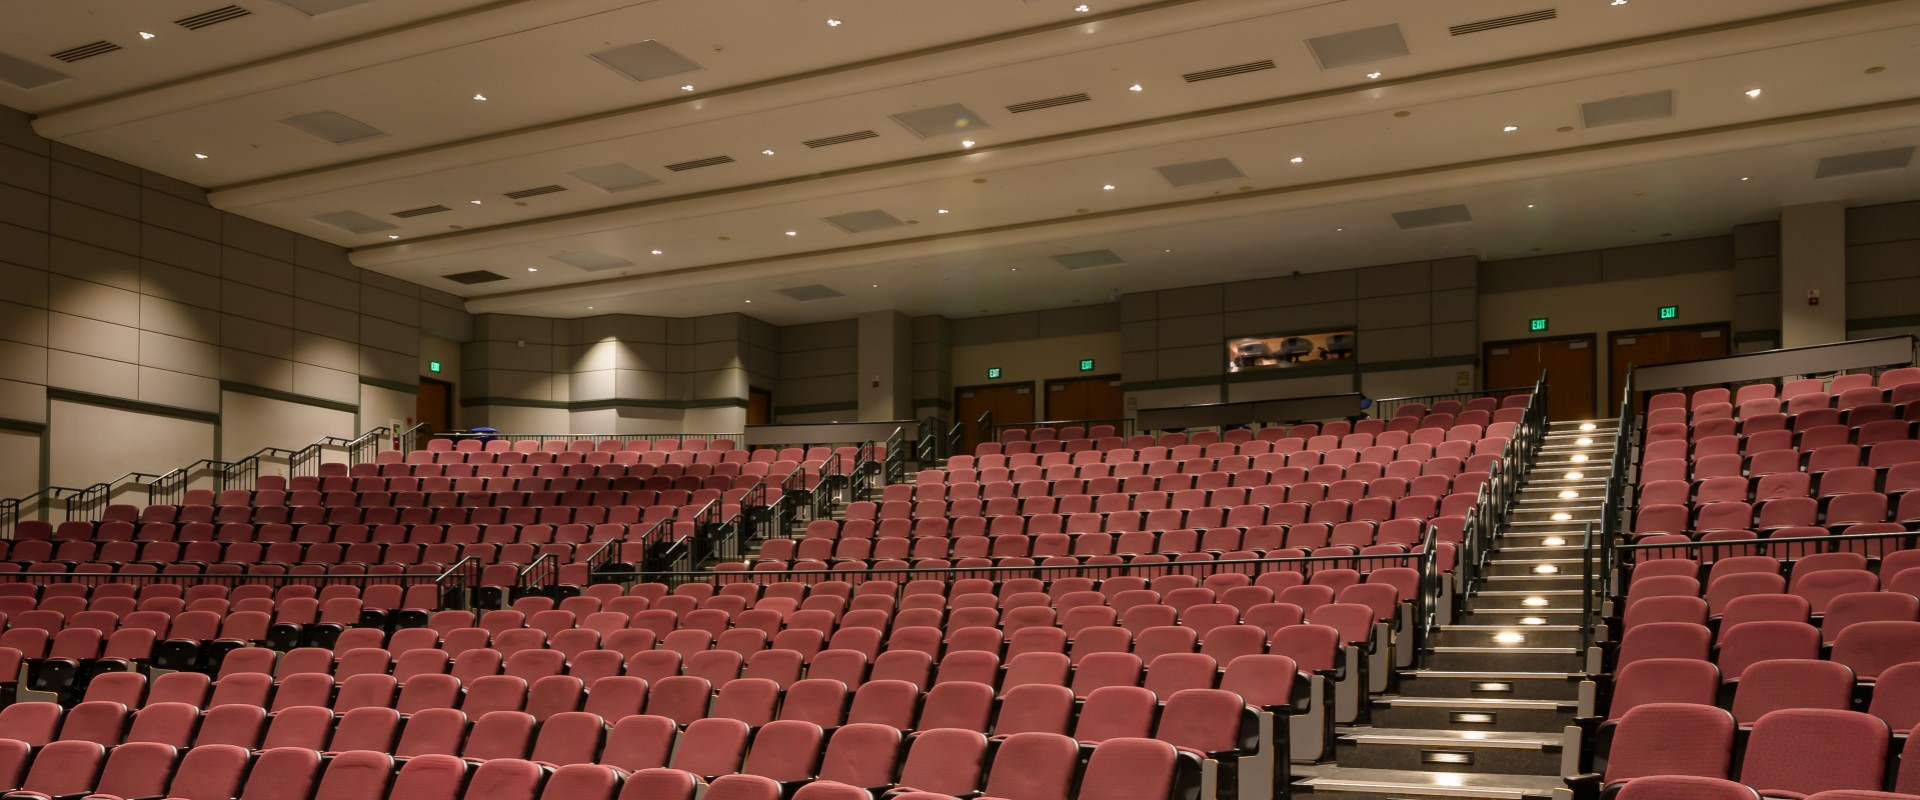 LED Downlights for Penn State's Premier Lecture Hall